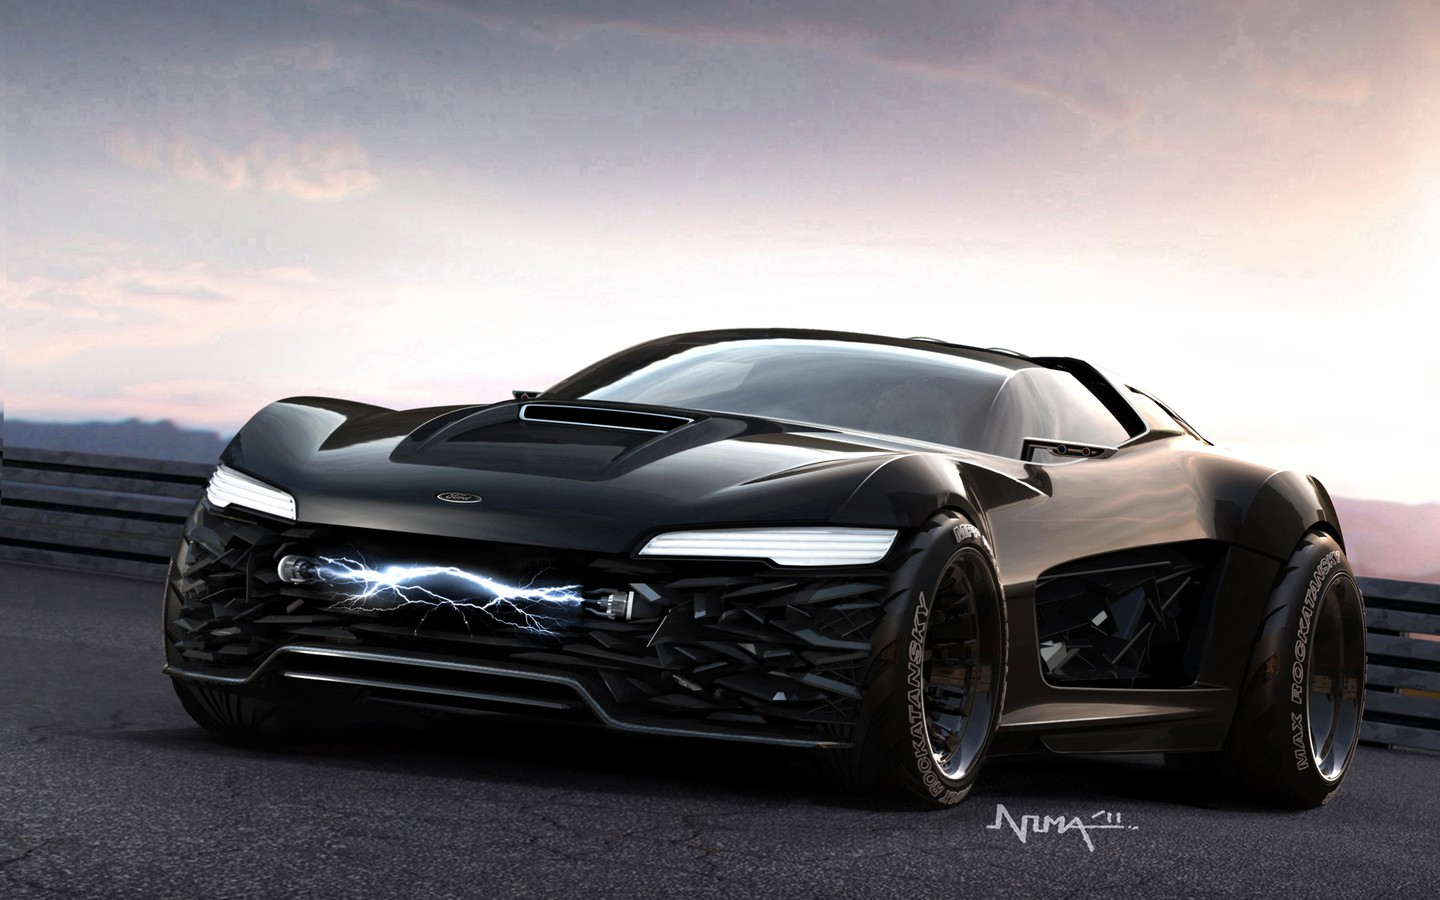 Black Ford Explorer >> Concept art vehicles ford falcon black australia wallpaper | AllWallpaper.in #11123 | PC | en